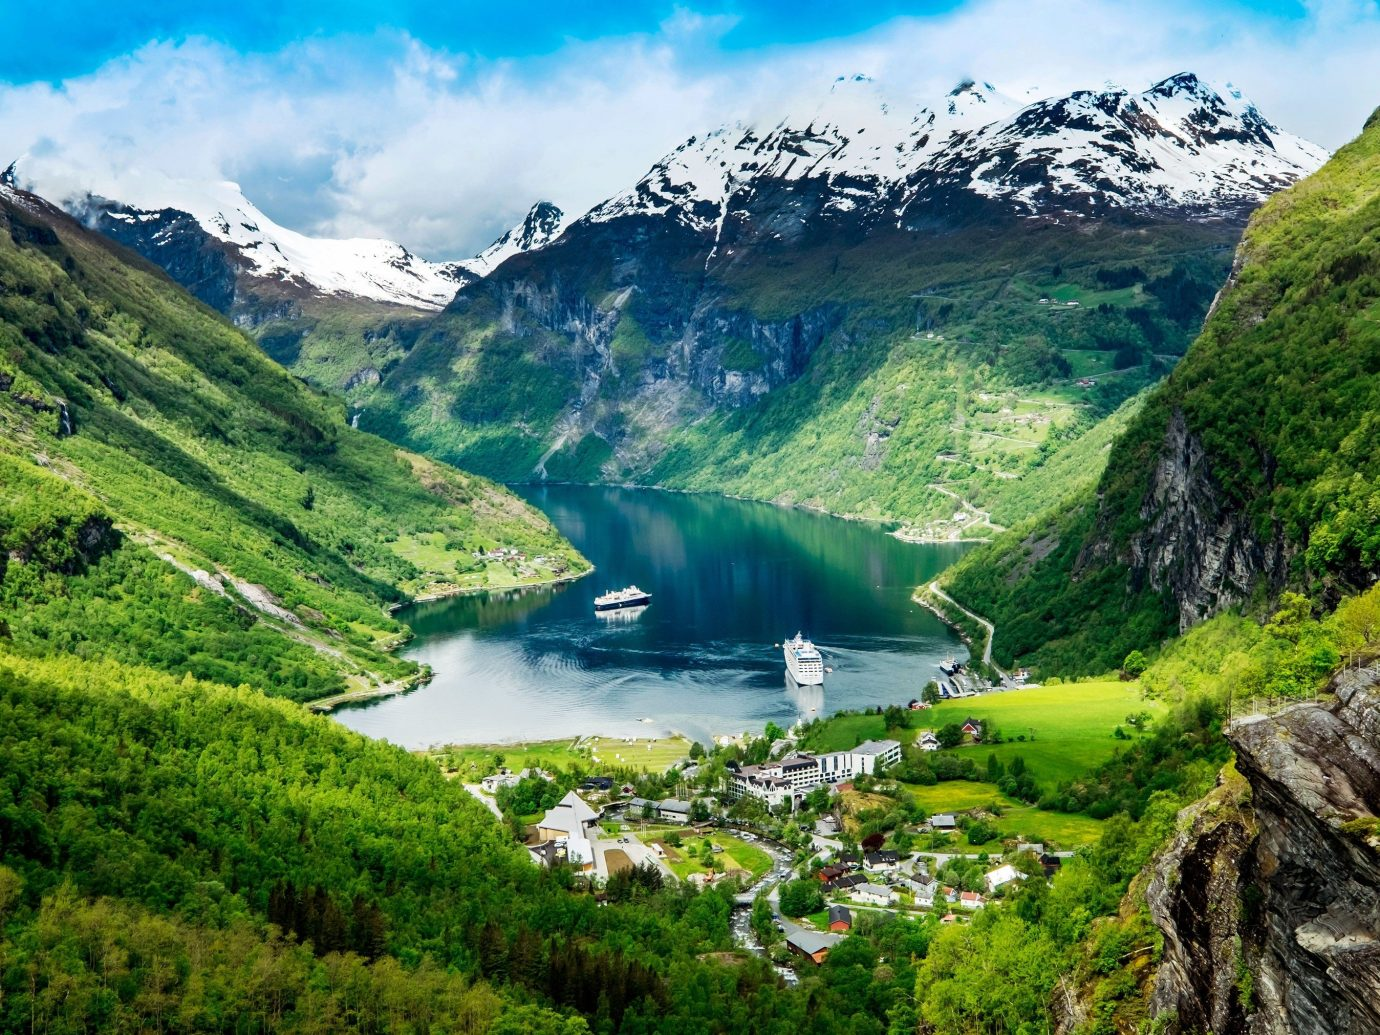 Trip Ideas mountain sky outdoor Nature grass highland mountainous landforms mountain range geographical feature landform hill wilderness fjord hillside Lake tarn loch fell alps valley mountain pass landscape glacial landform green canyon plateau lush meadow national park reservoir grassy overlooking